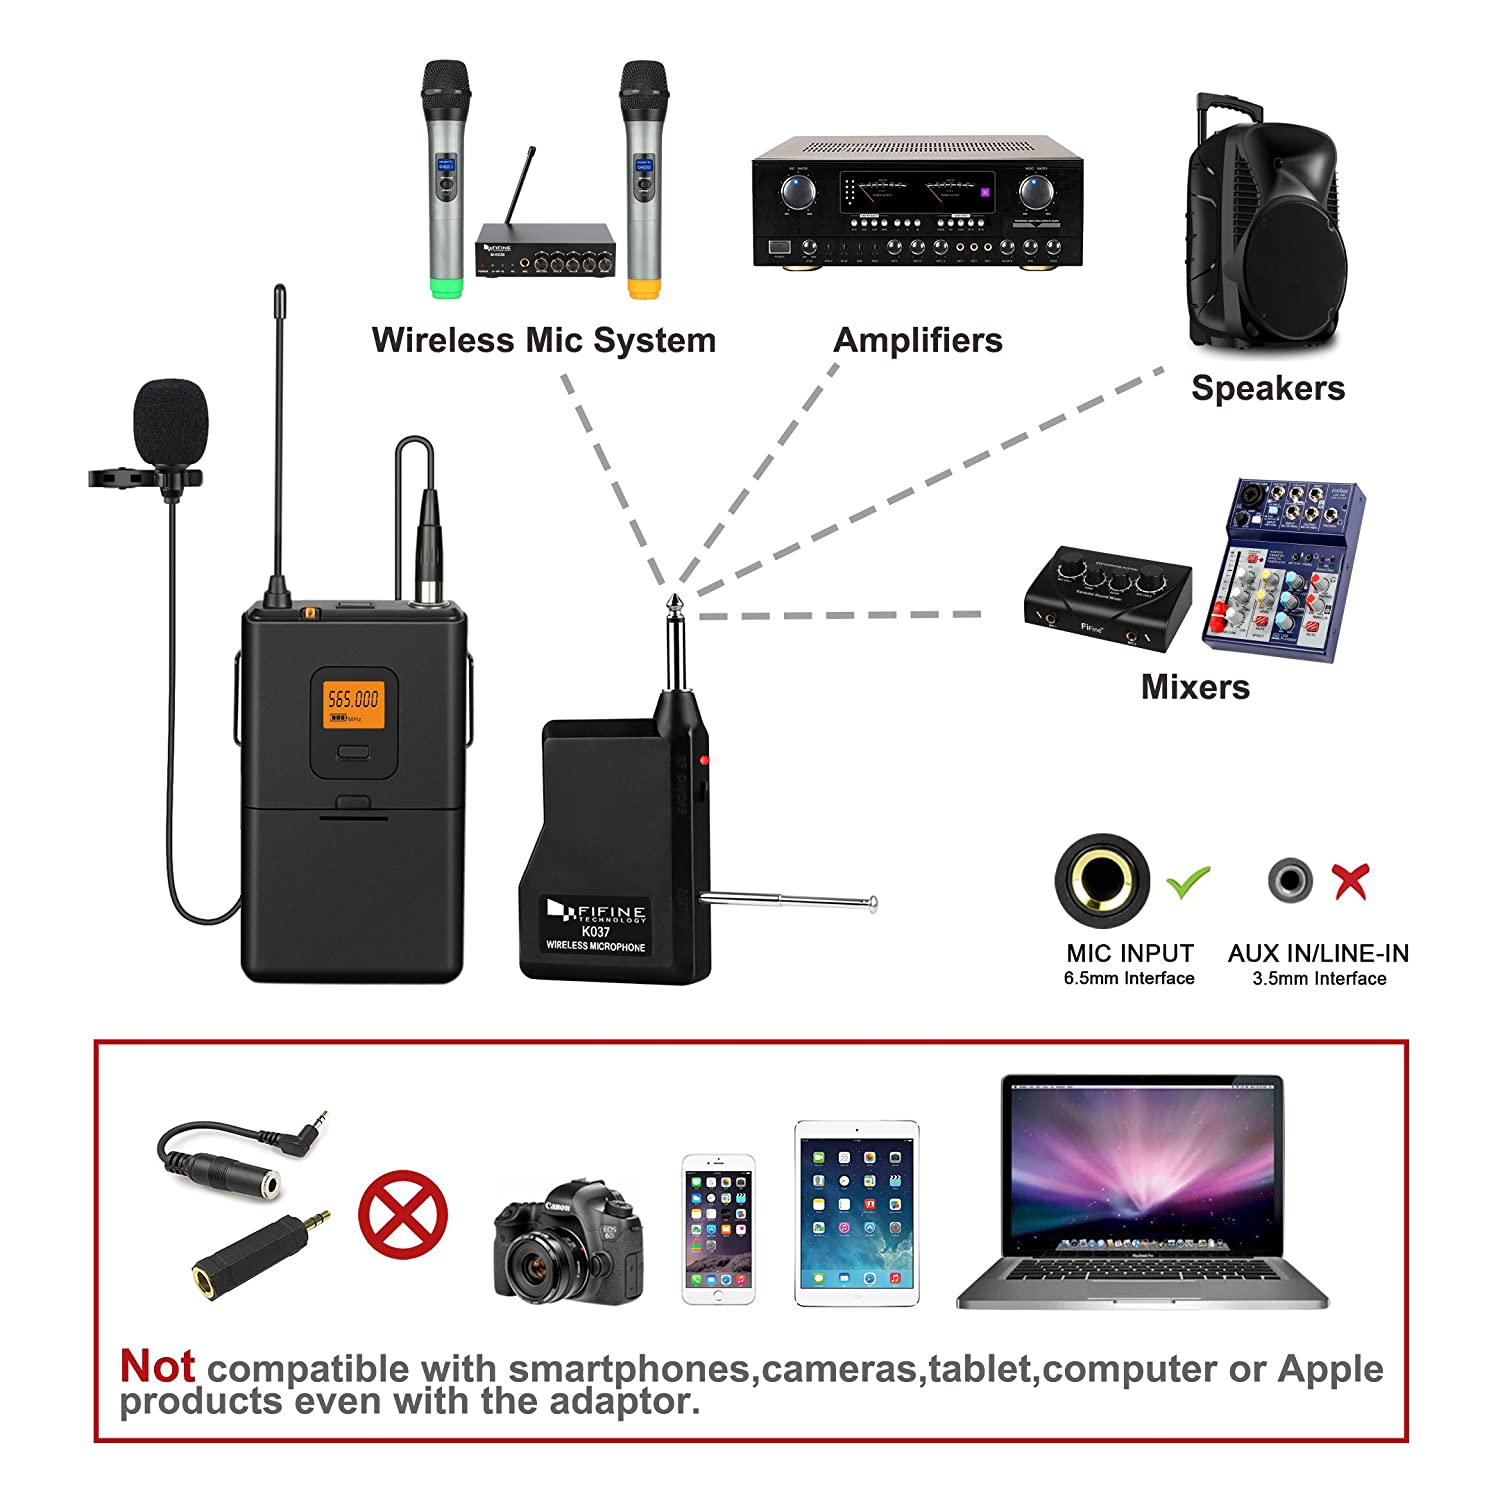 Fifine 20 Channel Uhf Wireless Lavalier Lapel Microphone Rack Wiring Diagram Live Sound With Bodypack Transmitter Mini Xlr Female Mic And Portable Receiver 1 4 Inch Output Perfect For Performance K037 Musical Instruments